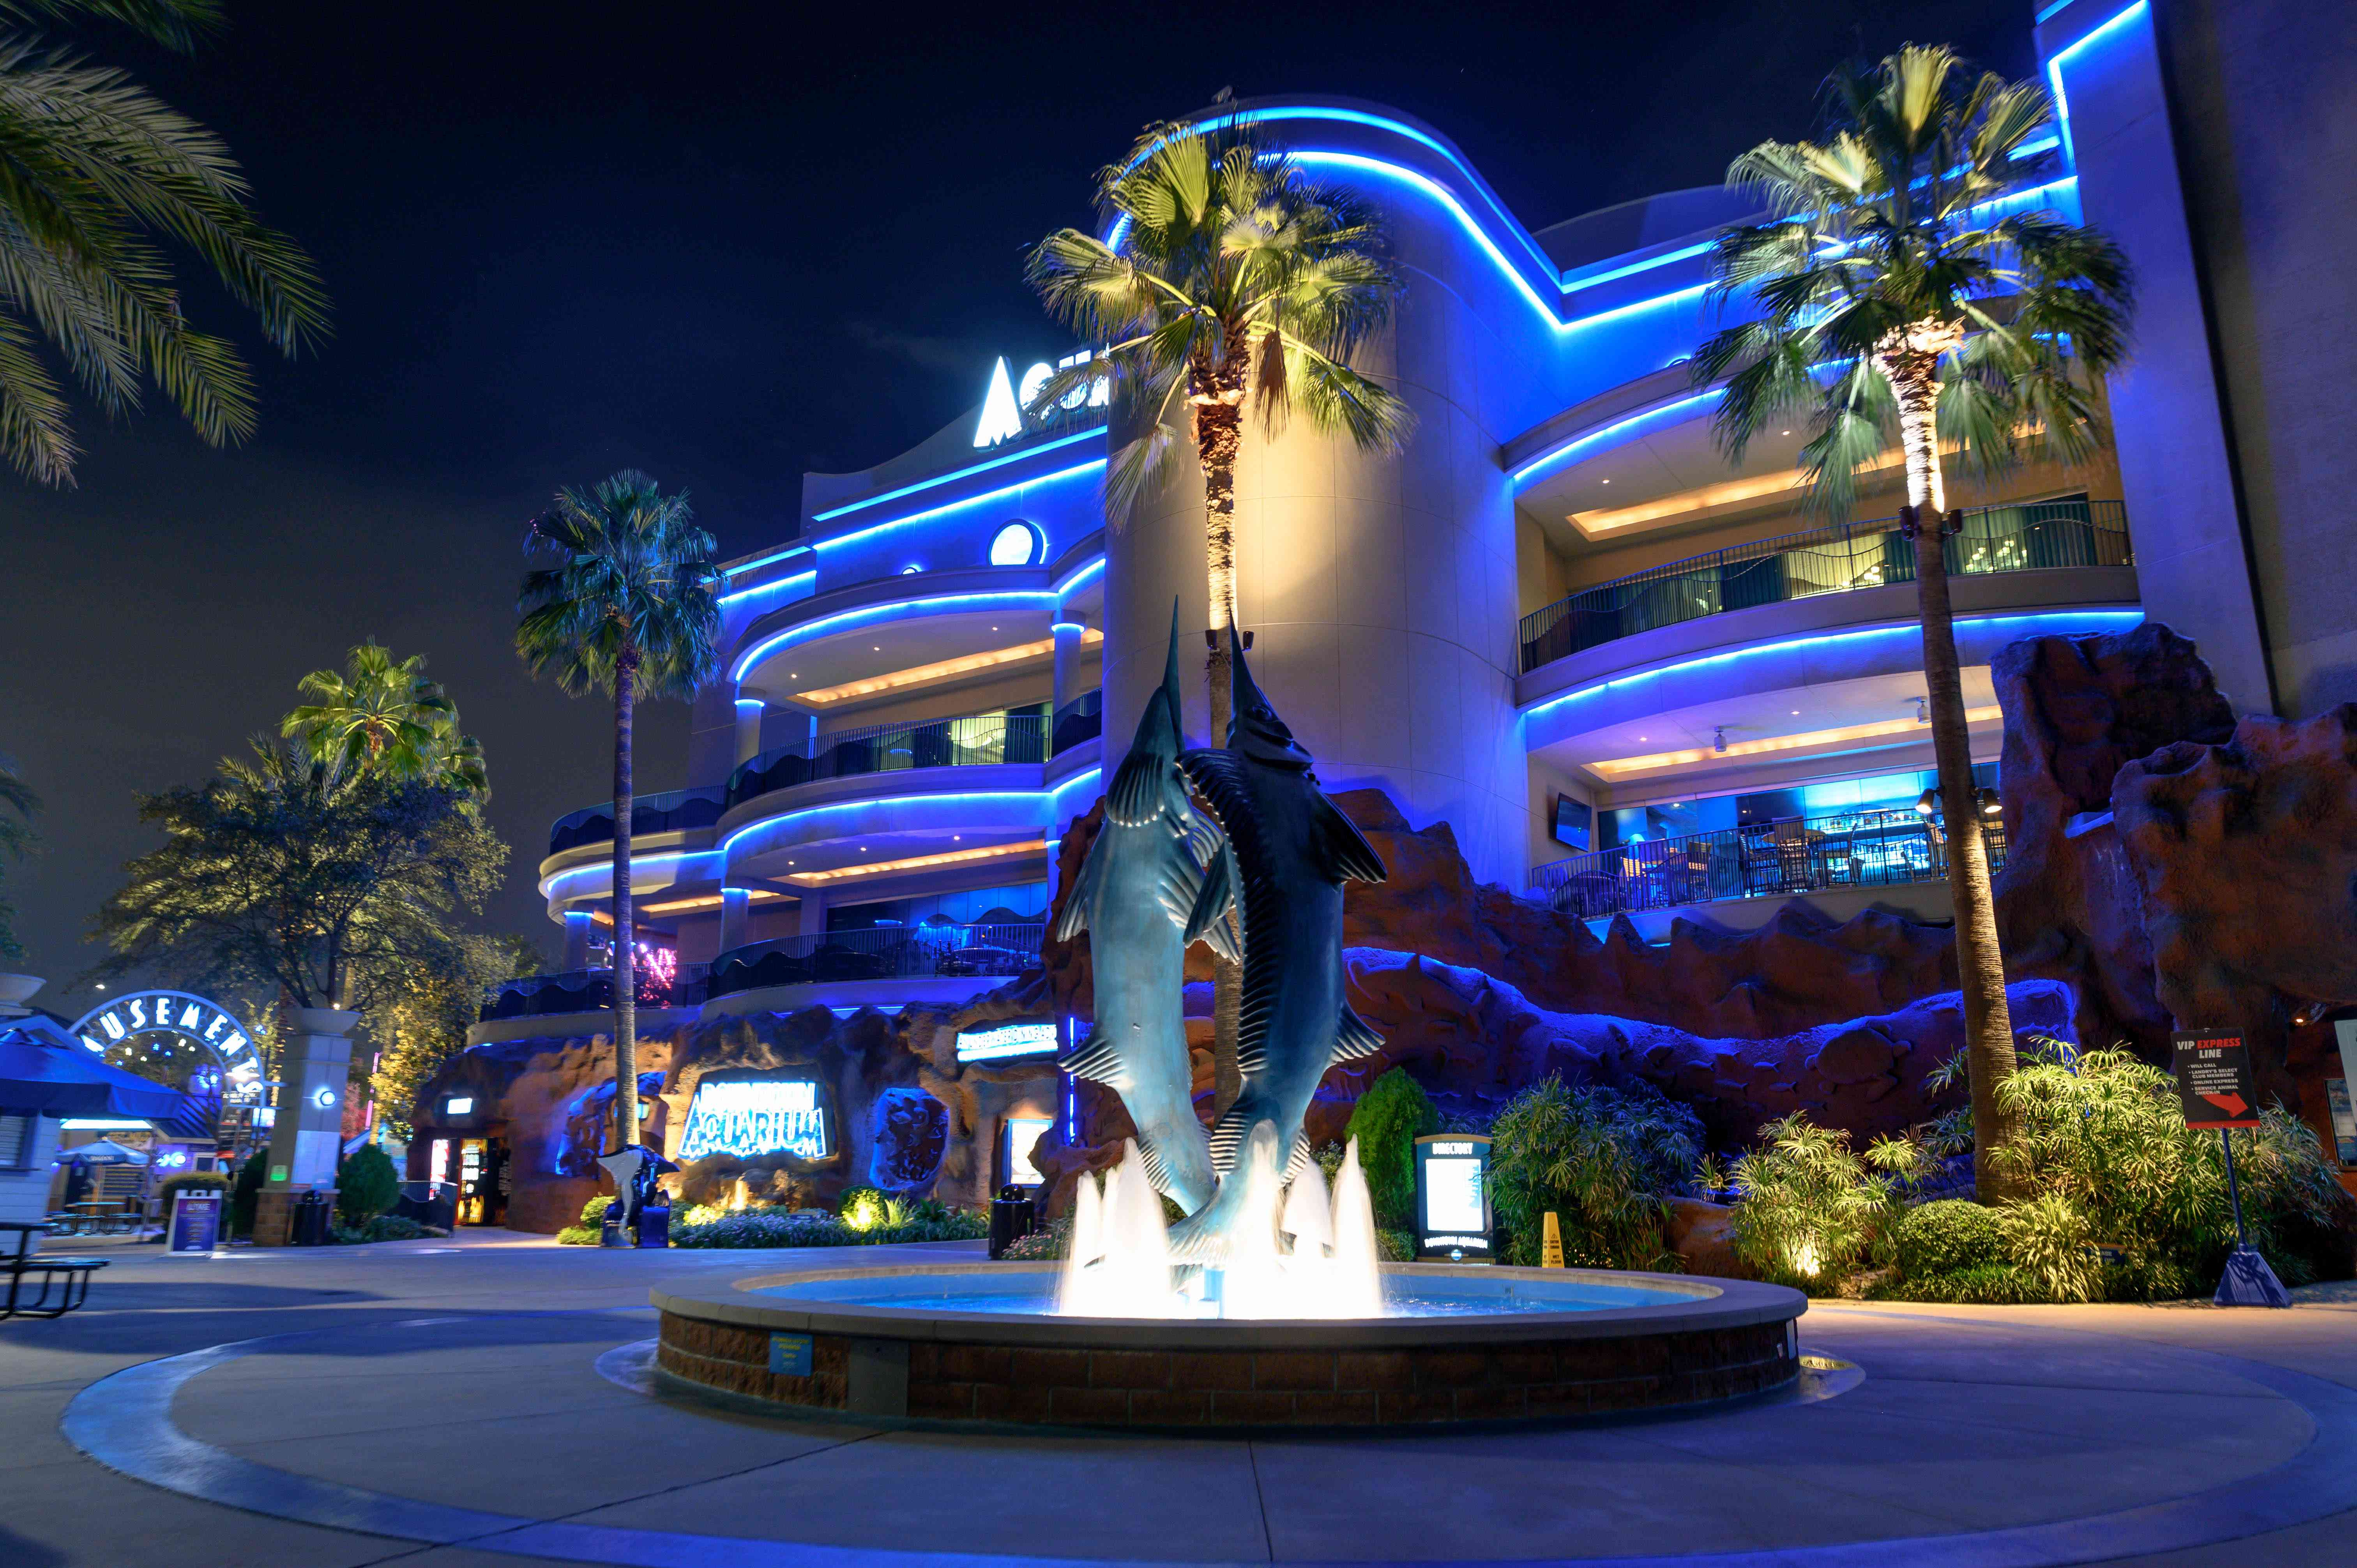 The exterior of the Houston Aquarium lit up at night with a swordfish fountain in the front